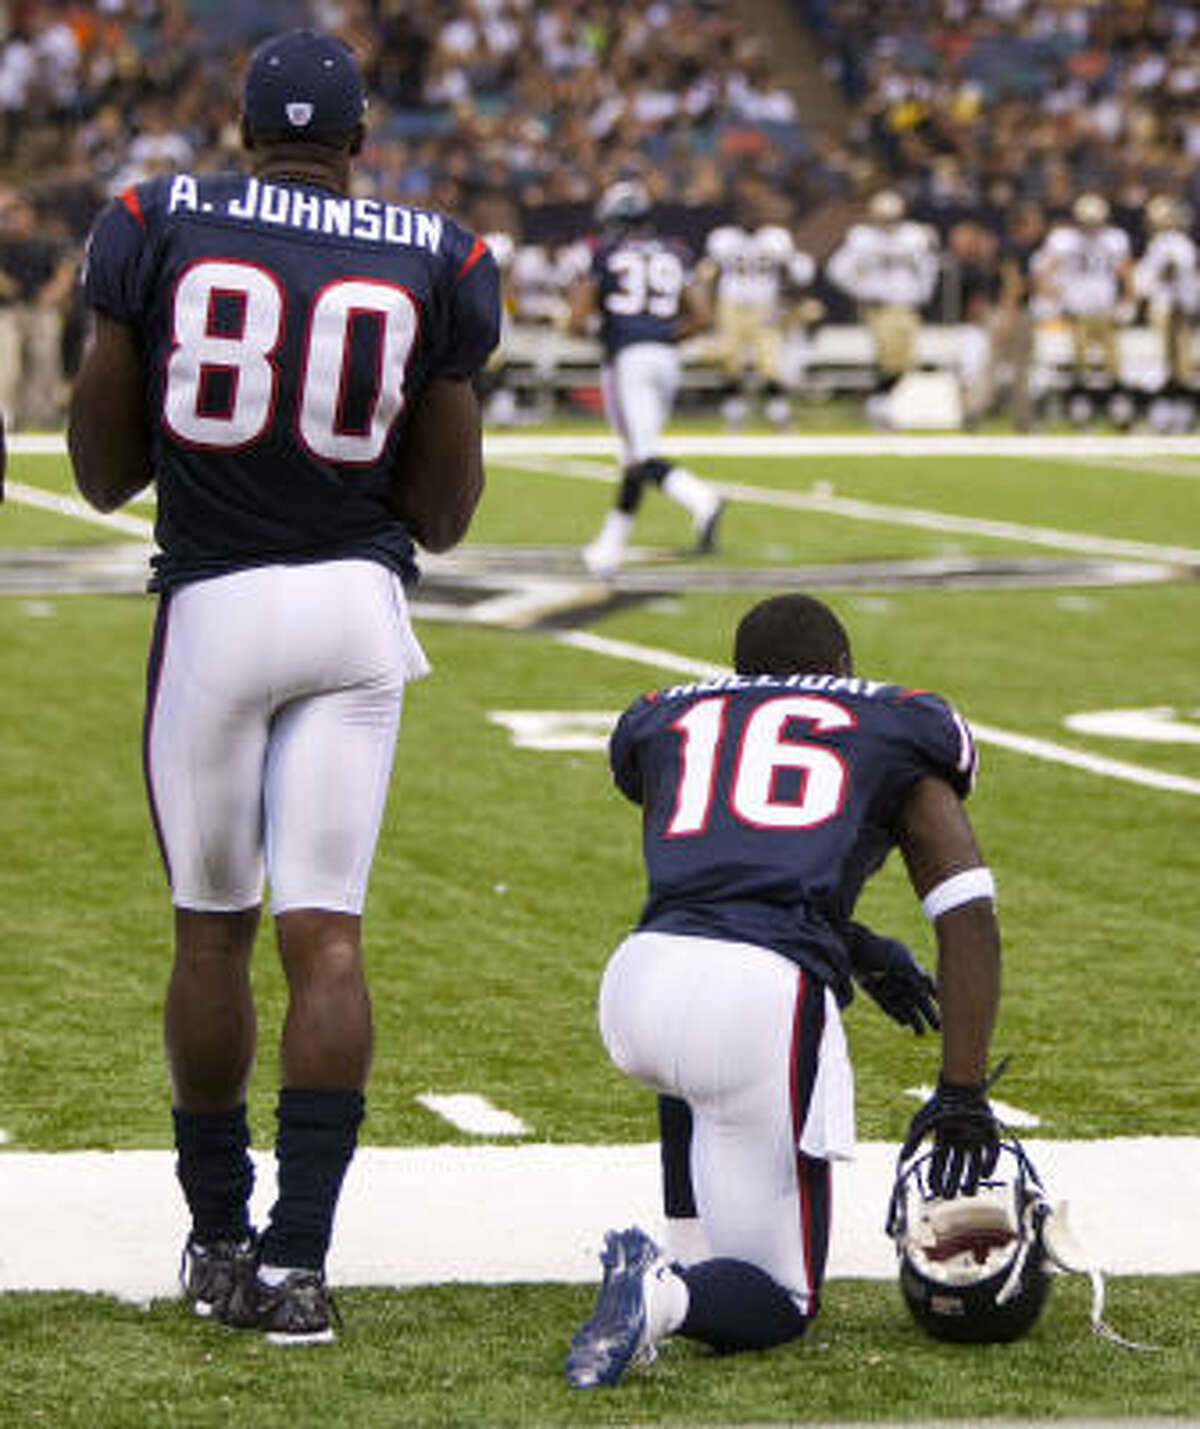 The Texans' Trindon Holliday kneels on the sidelines next to receiver Andre Johnson during the third quarter of a preseason game against the Saints.